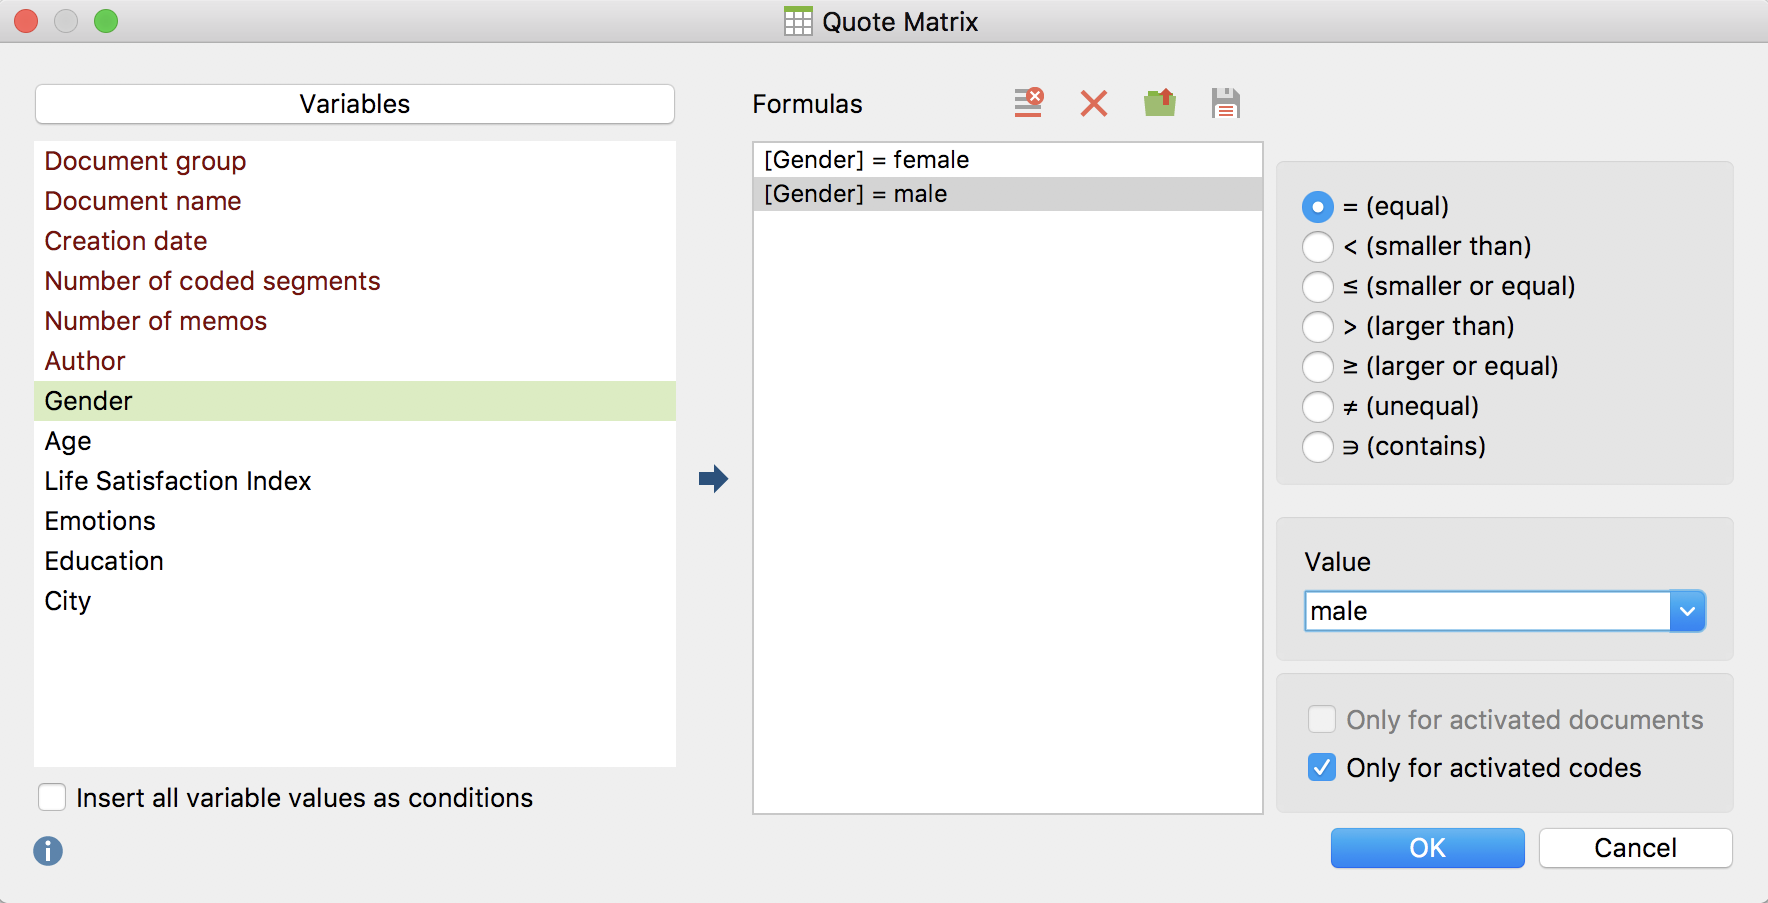 Defining columns for the Quote Matrix